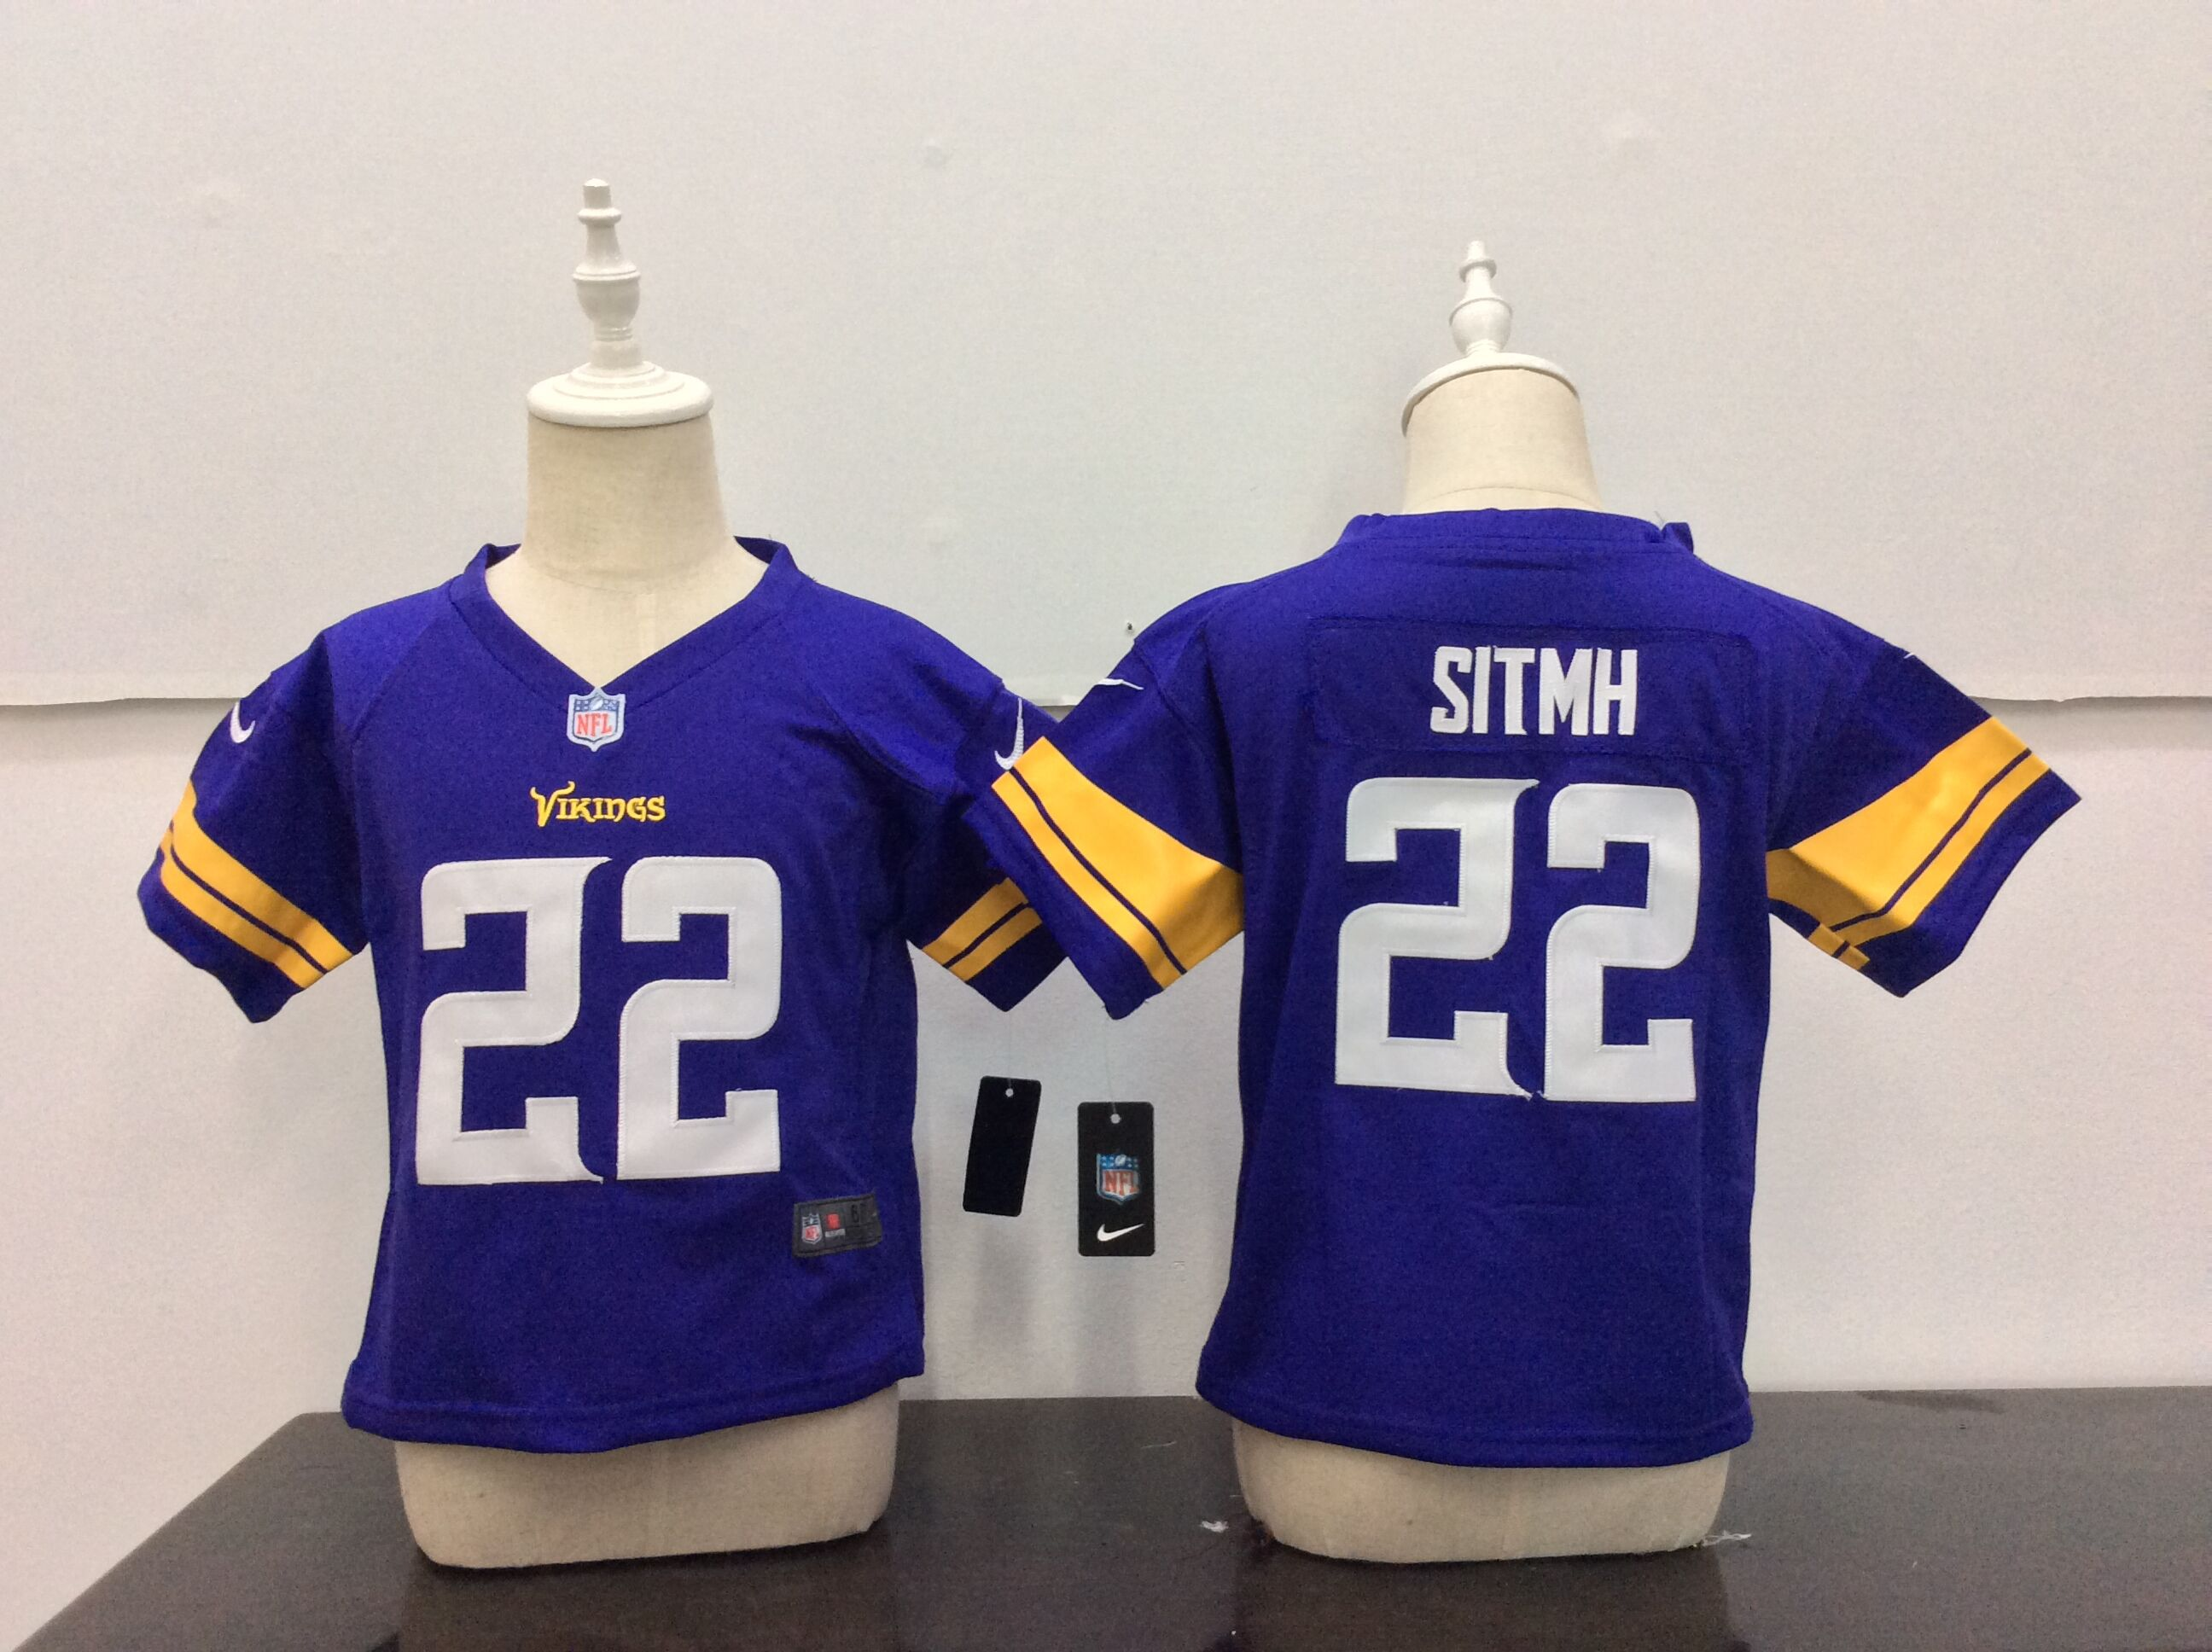 Baby Minnesota Vikings 22 Sitmh Purple Nike NFL Jerseys